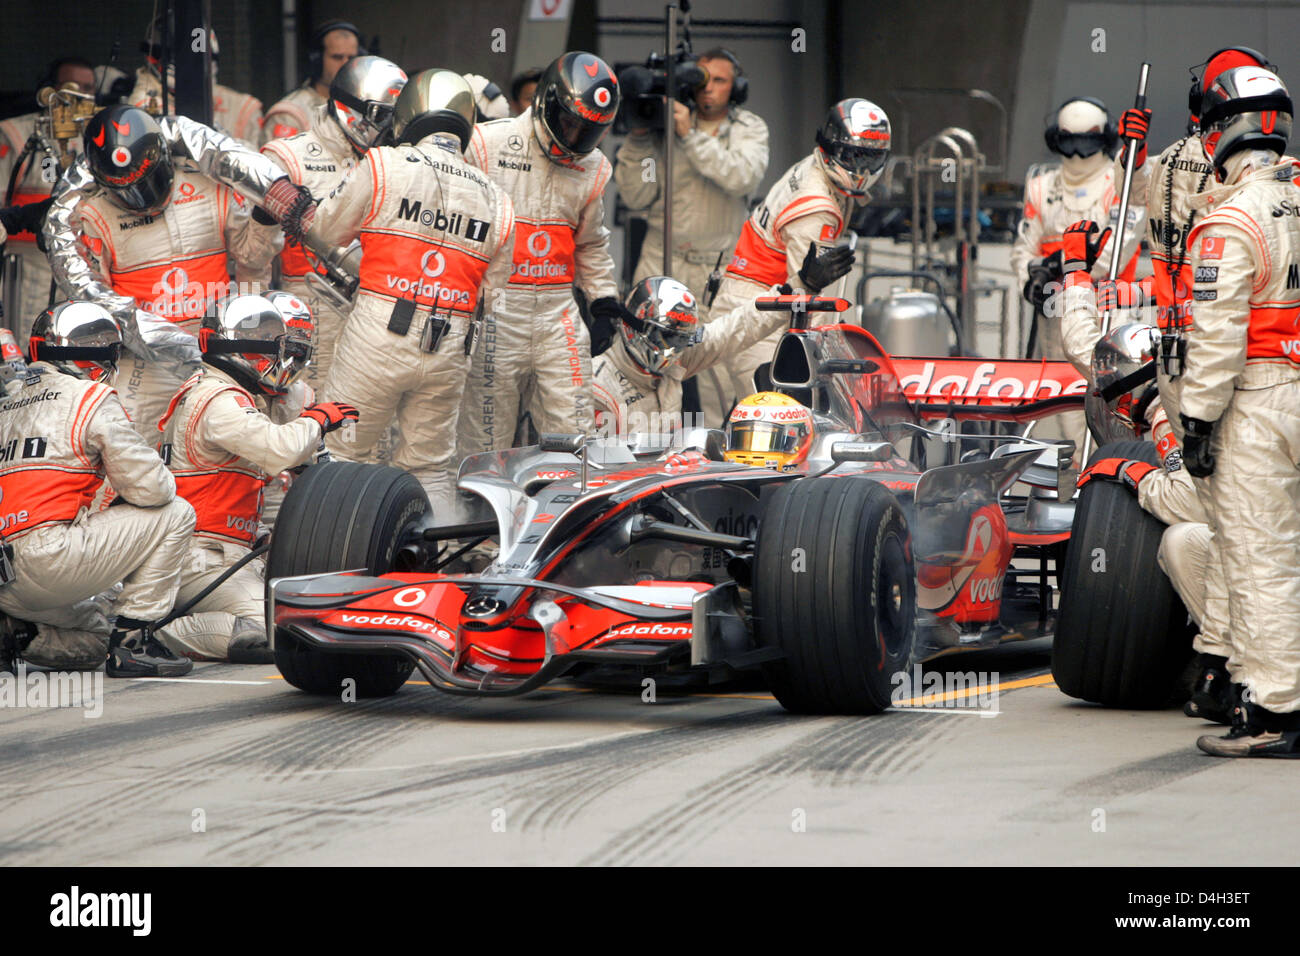 f1 pit crew stock photos f1 pit crew stock images alamy. Black Bedroom Furniture Sets. Home Design Ideas